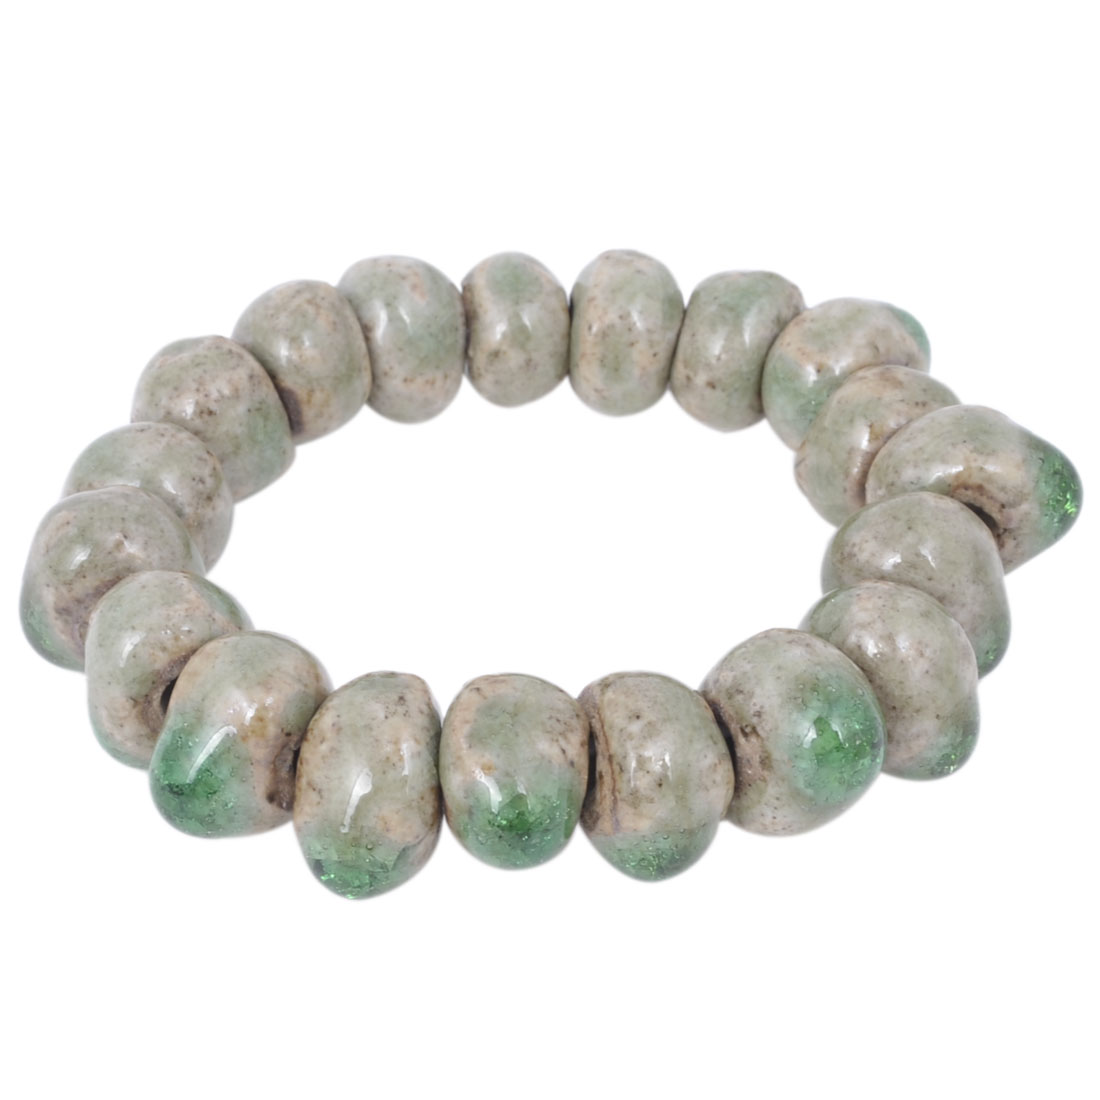 Unisex Wrist Ornament Elastic Broken Ceramic Beads Bangle Bracelet Khaki Green